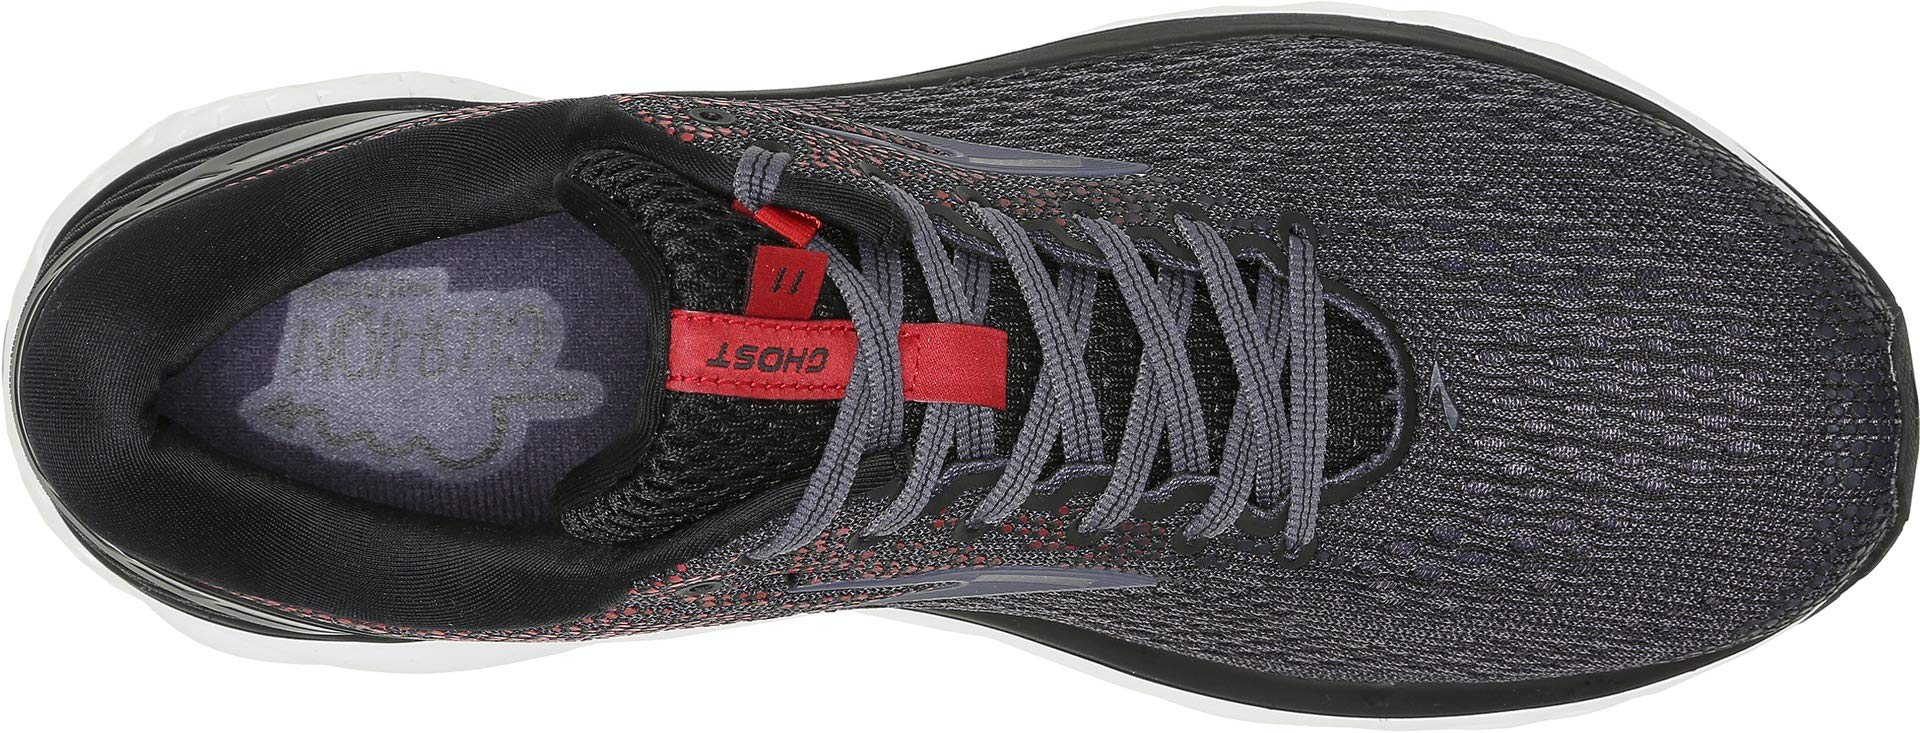 Brooks Men's Ghost 11 Black/Graystone/Cherry 7 D US by Brooks (Image #1)